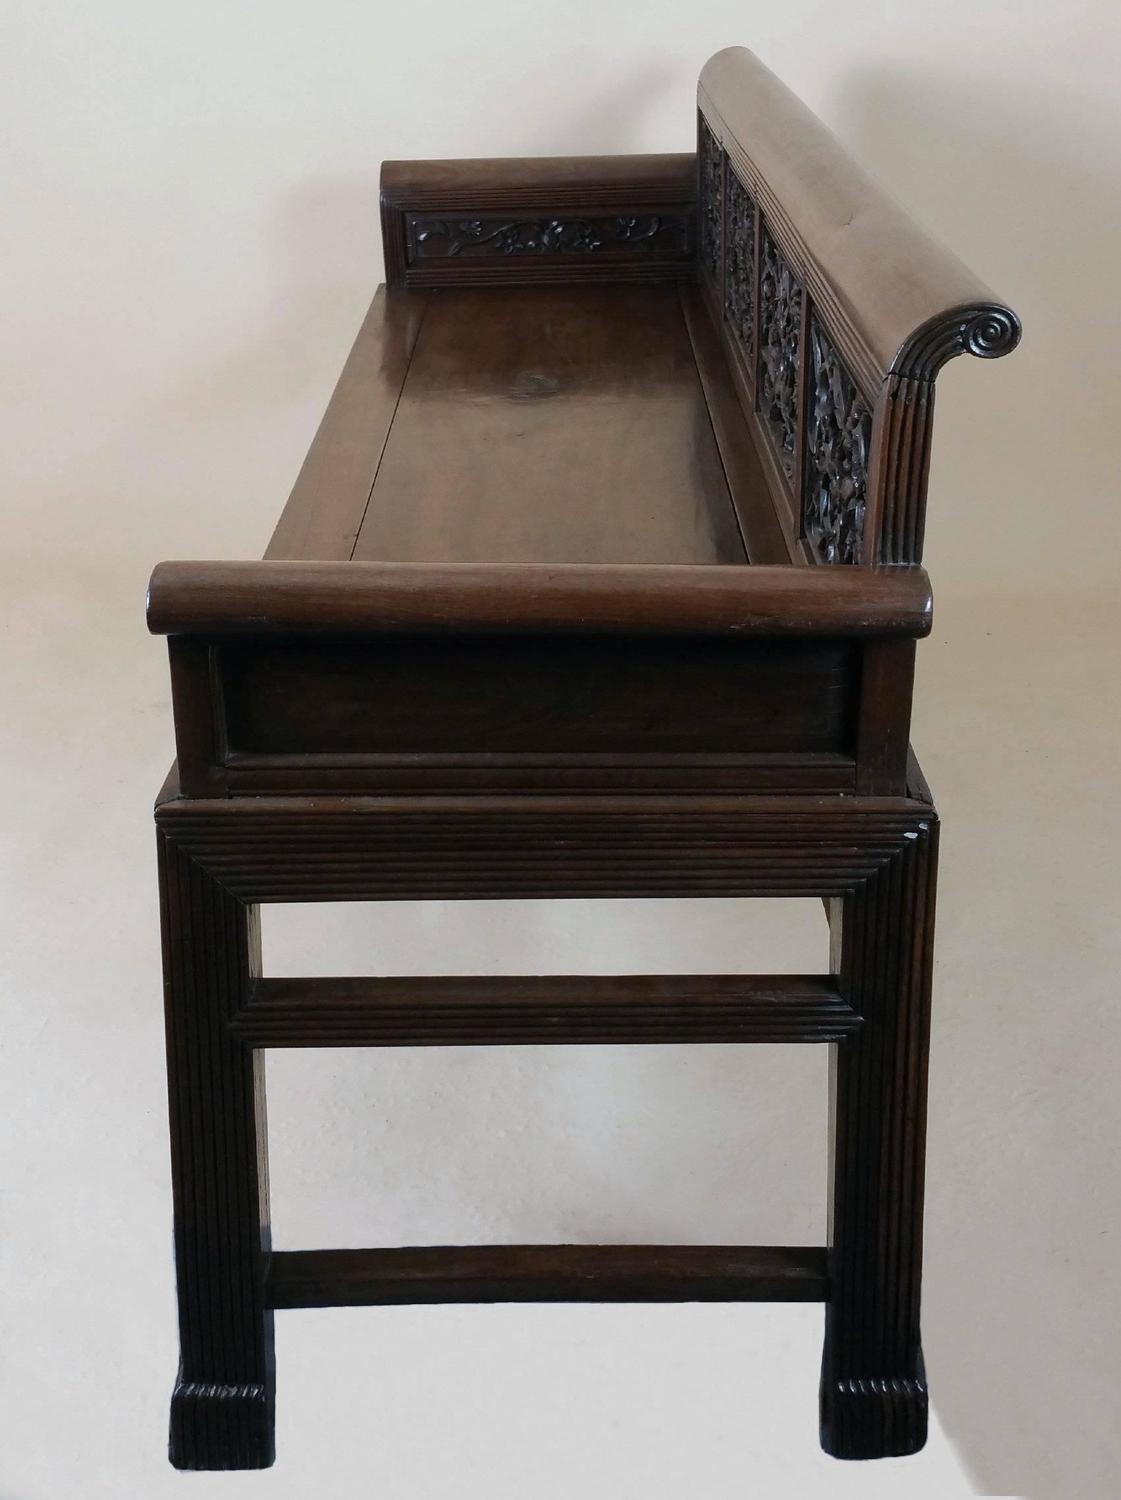 Th century chinese carved hardwood bench for sale at stdibs